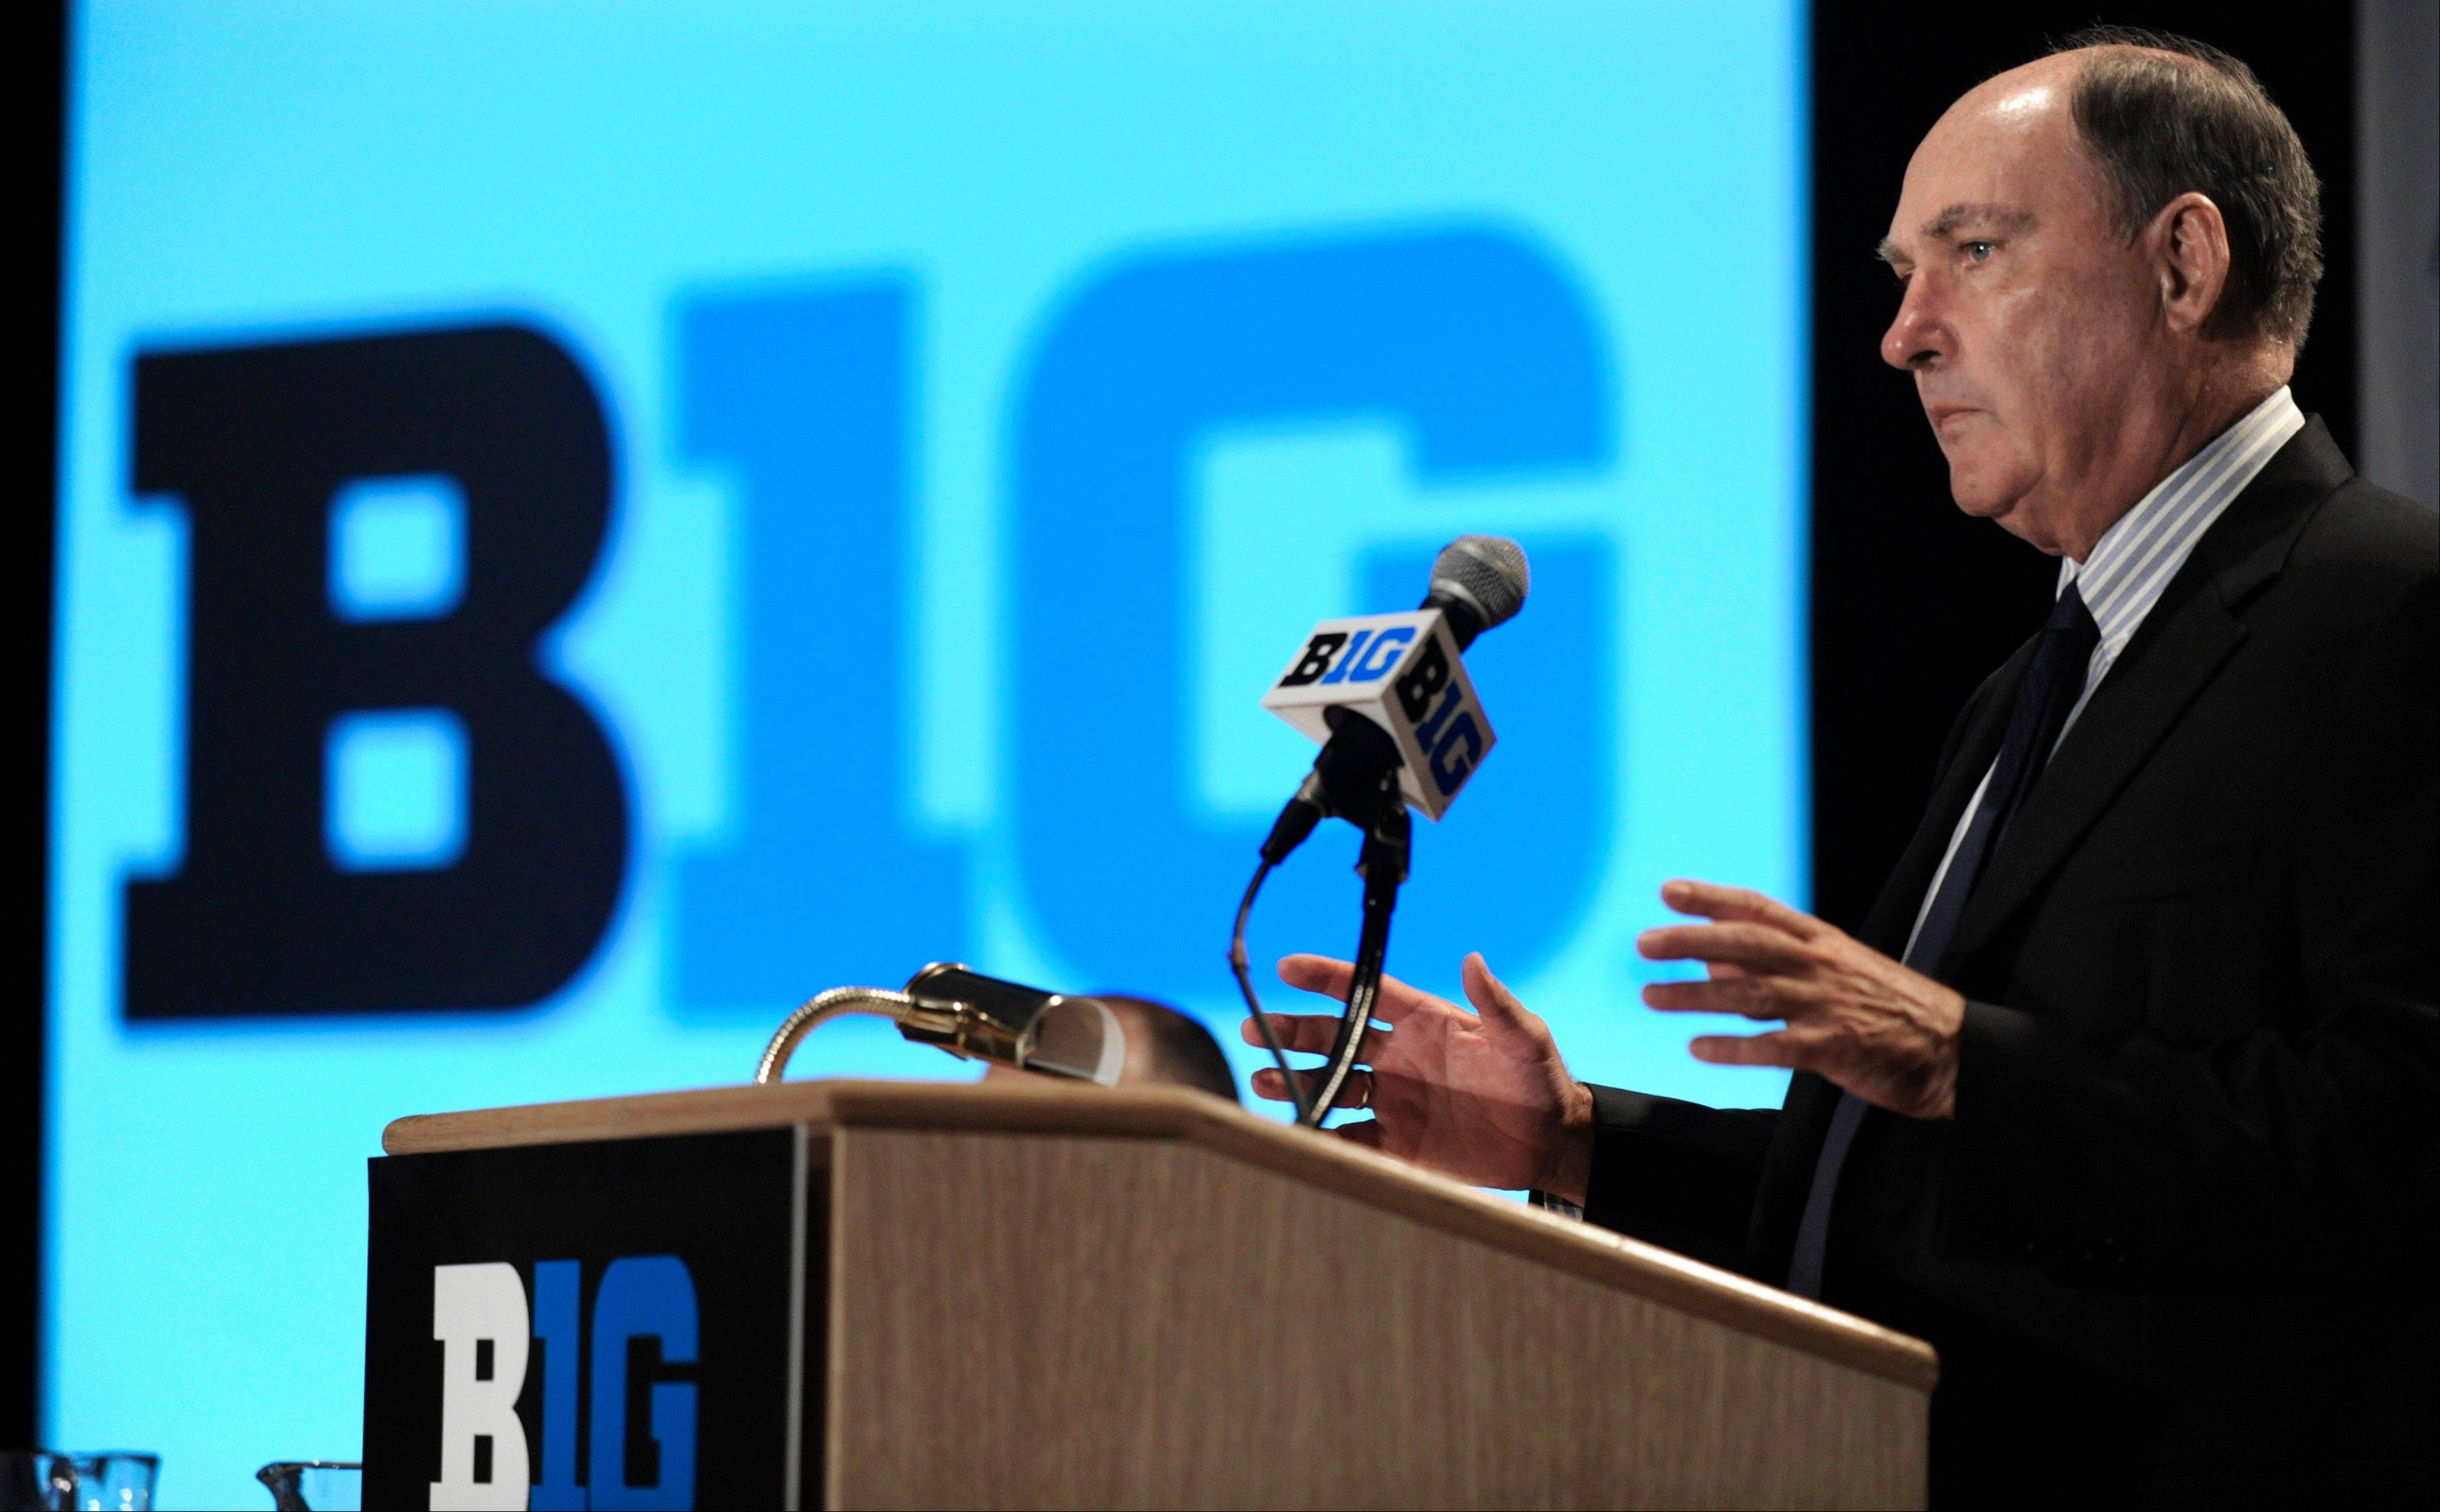 The Big Ten, led by commissioner Jim Delany, will shift to a nine-game conference schedule for football beginning in 2017. Big Ten teams now play eight conference games per season.